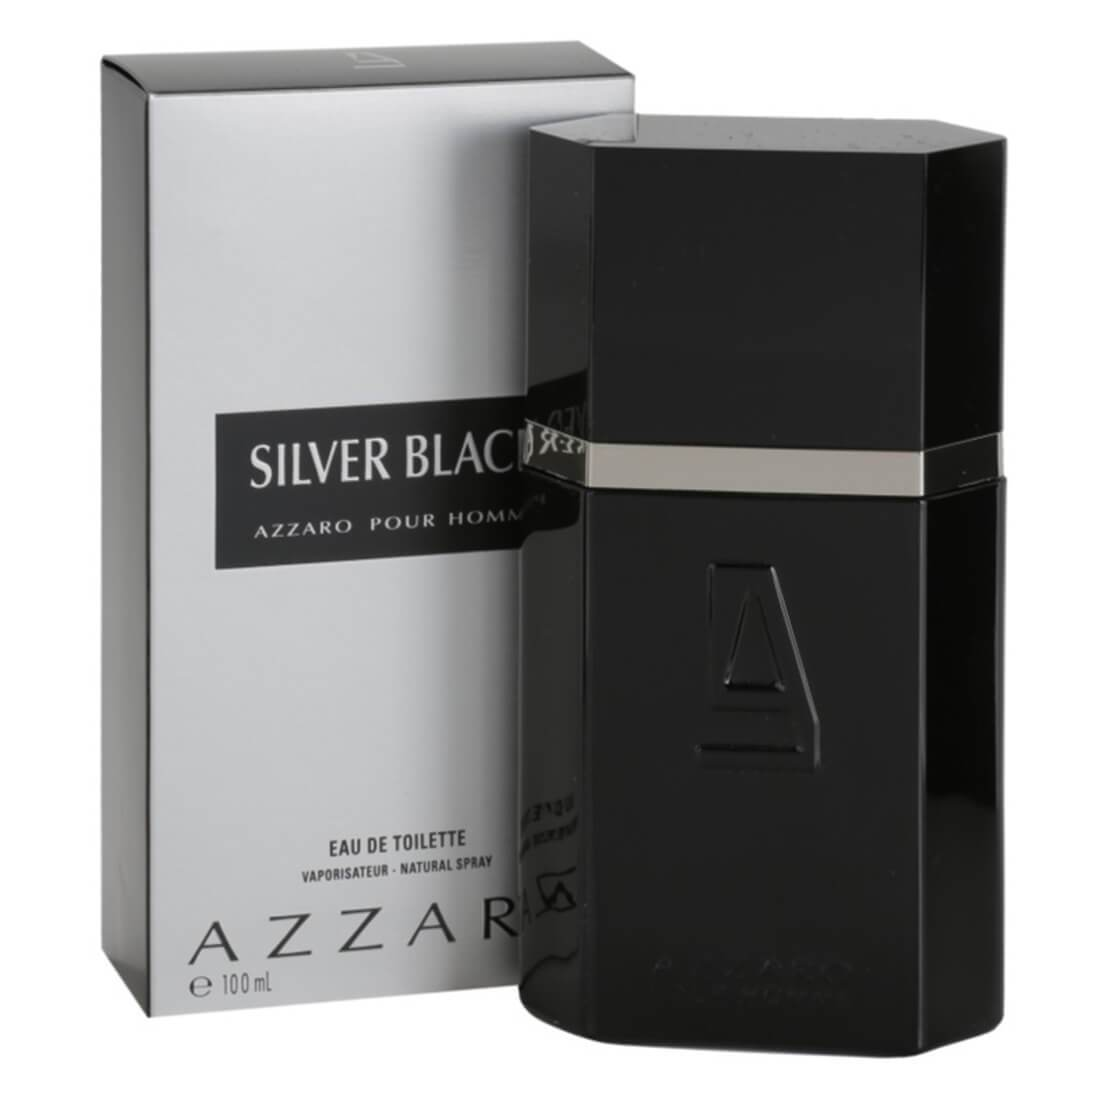 Azzaro Silver Black Eau De Toilette For Men 100ml